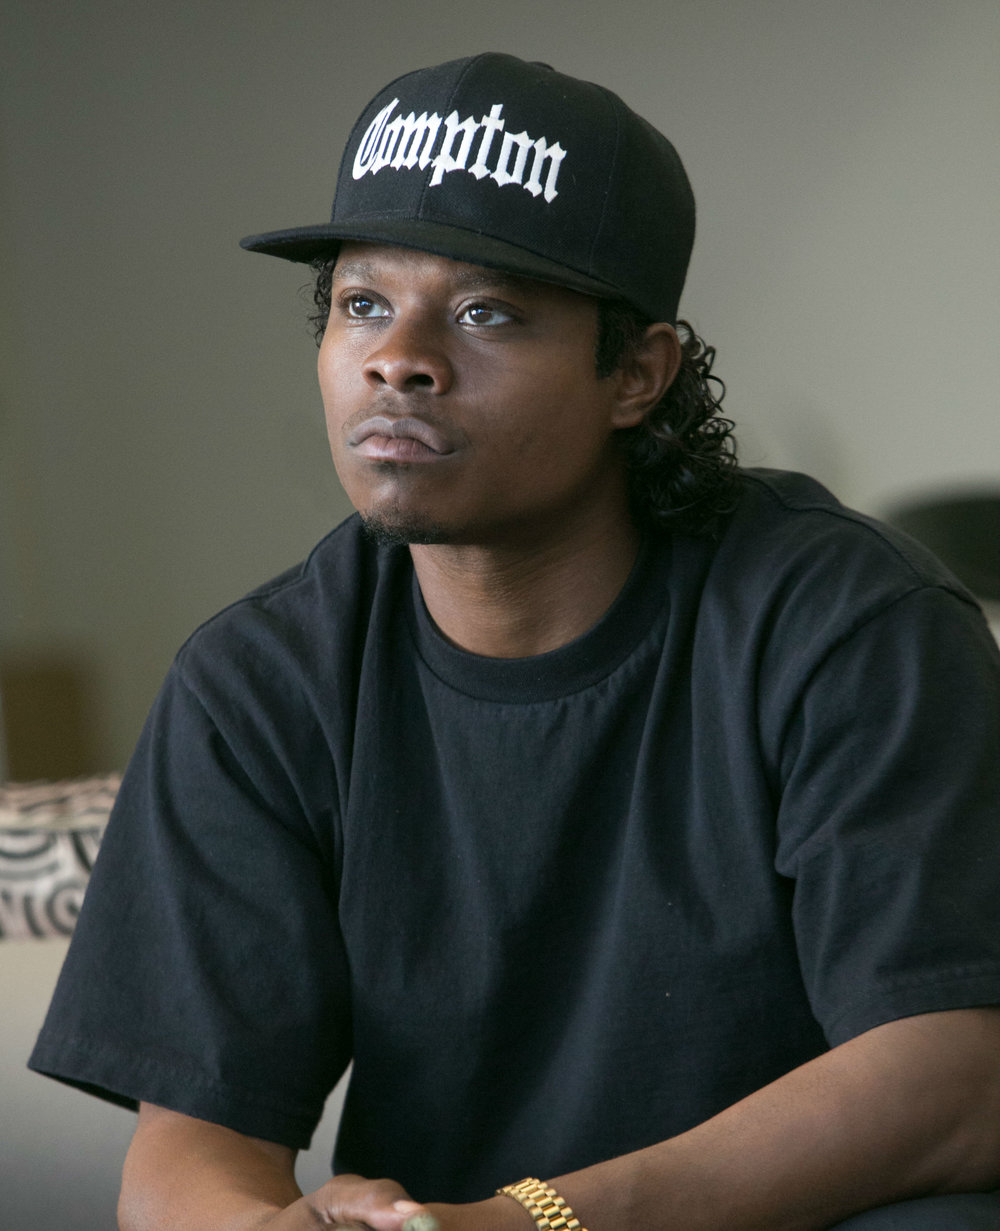 STRAIGHT OUTTA COMPTON, Available for rent/purchase on iTunes ~  https://itunes.apple.com/us/movie/straight-outta-compton-unrated-directors-cut/id1025190592